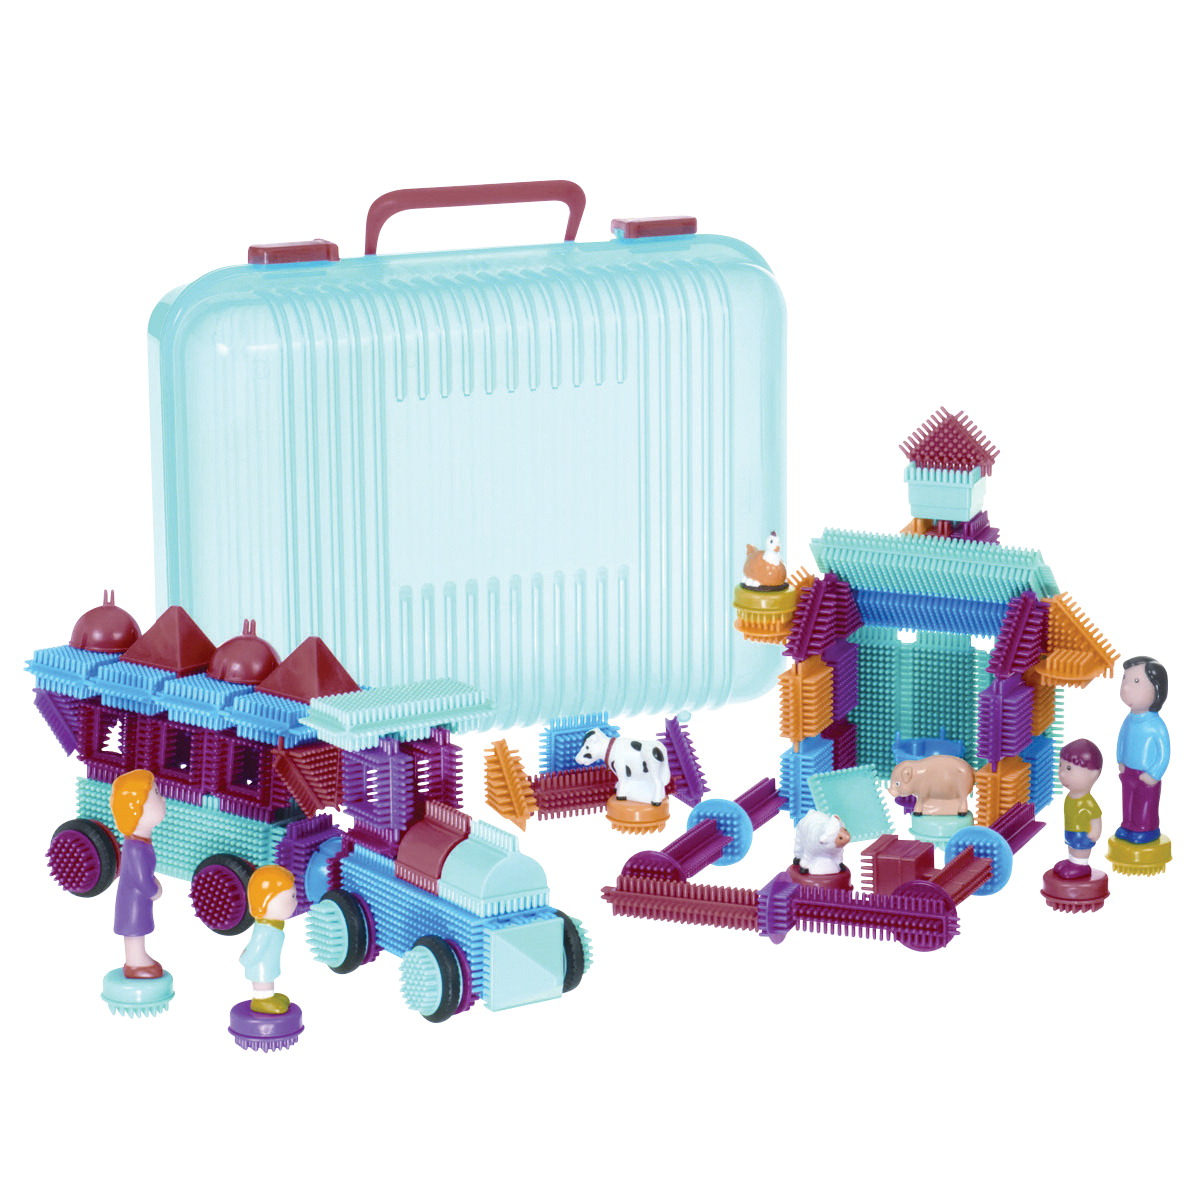 Toysmith Krinkle Interlocking Bristle Block Set